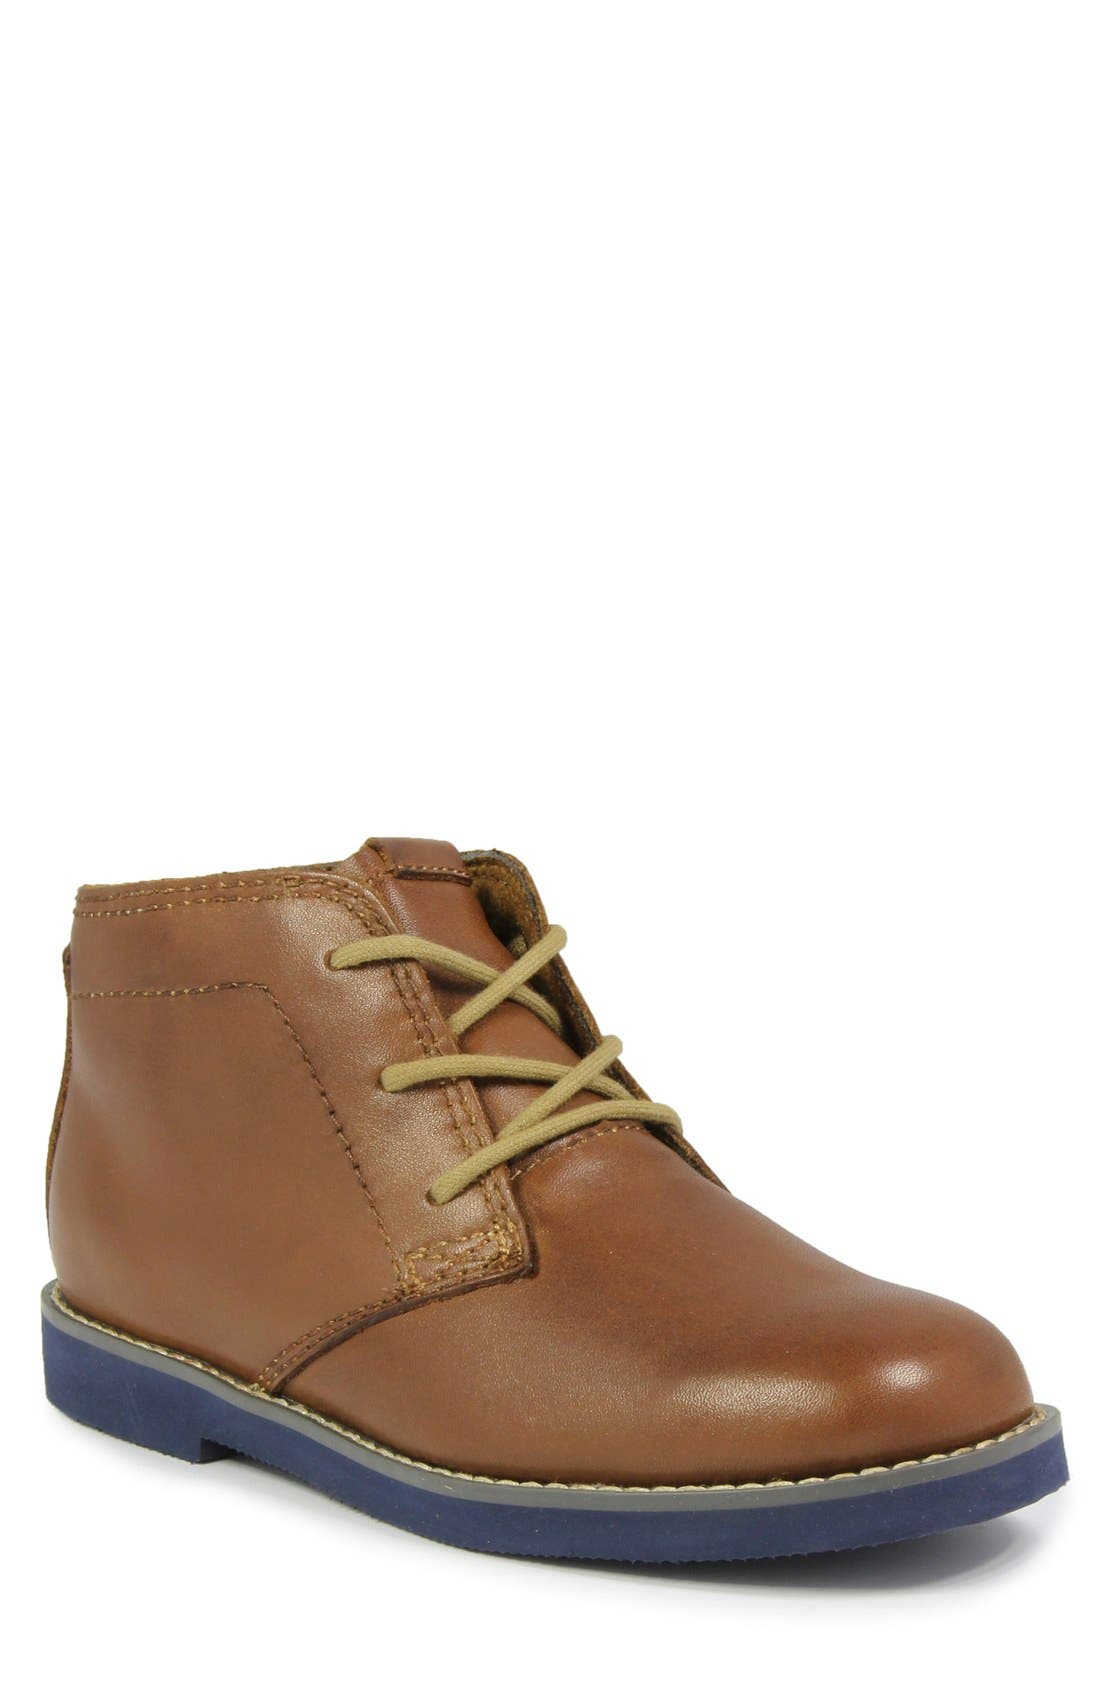 'Bucktown' Chukka Boot,                             Main thumbnail 3, color,